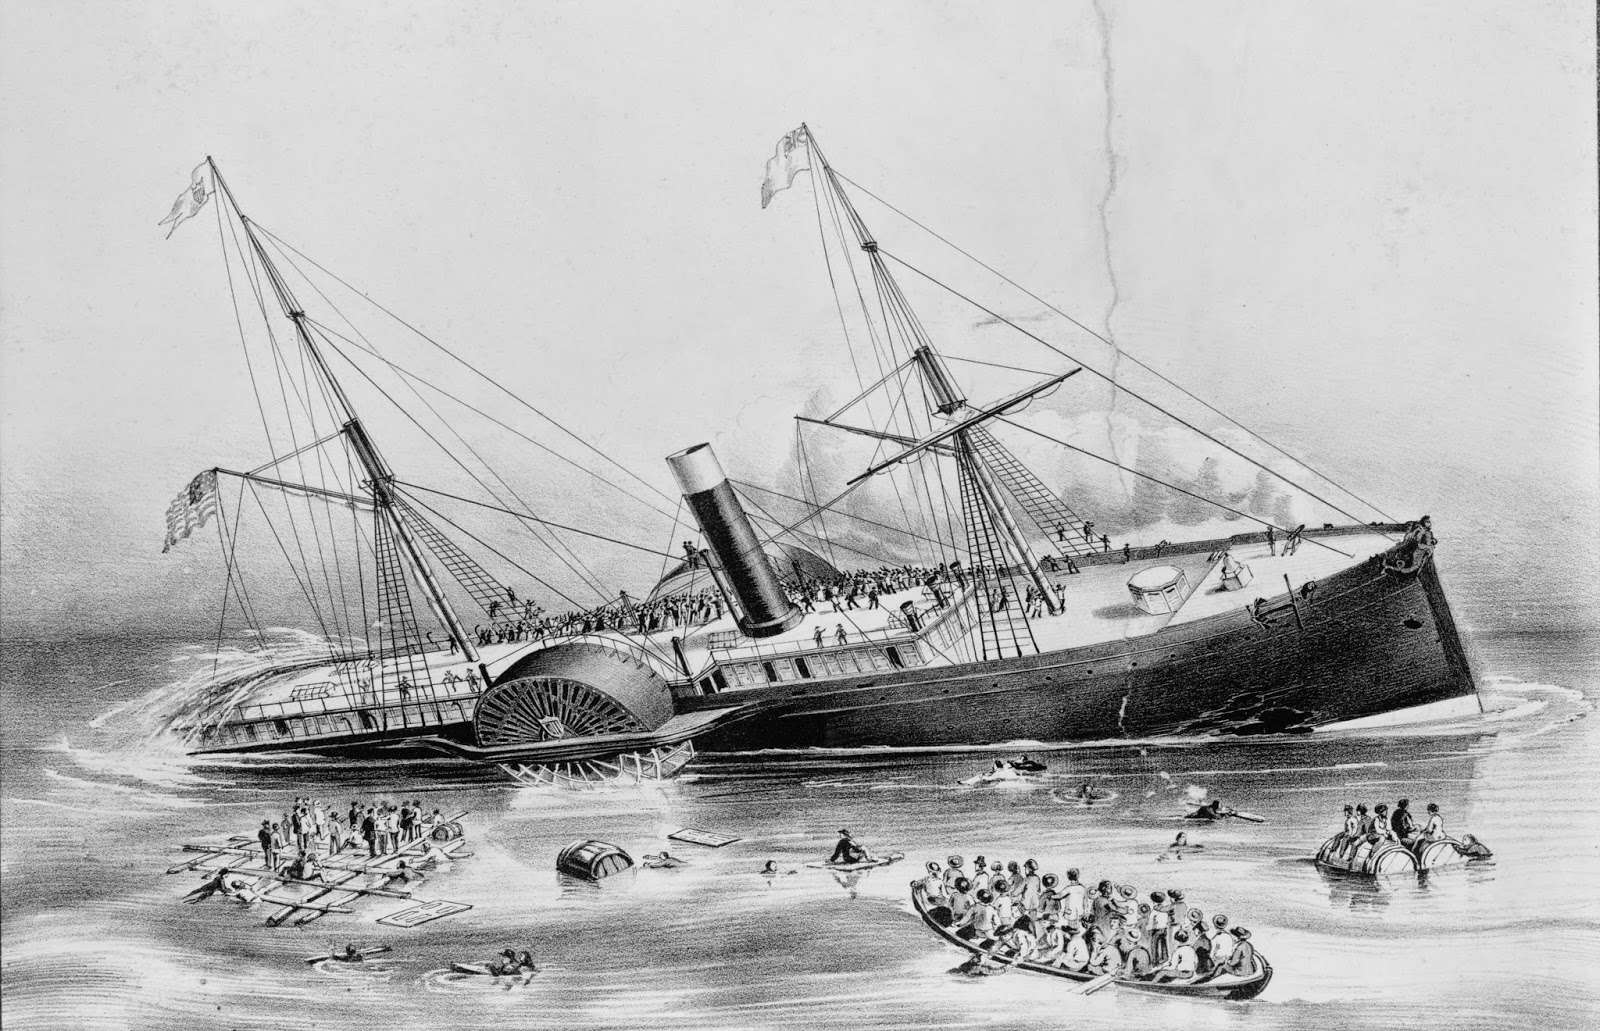 The Sinking of the S.S.Arctic steam ship arctic currier